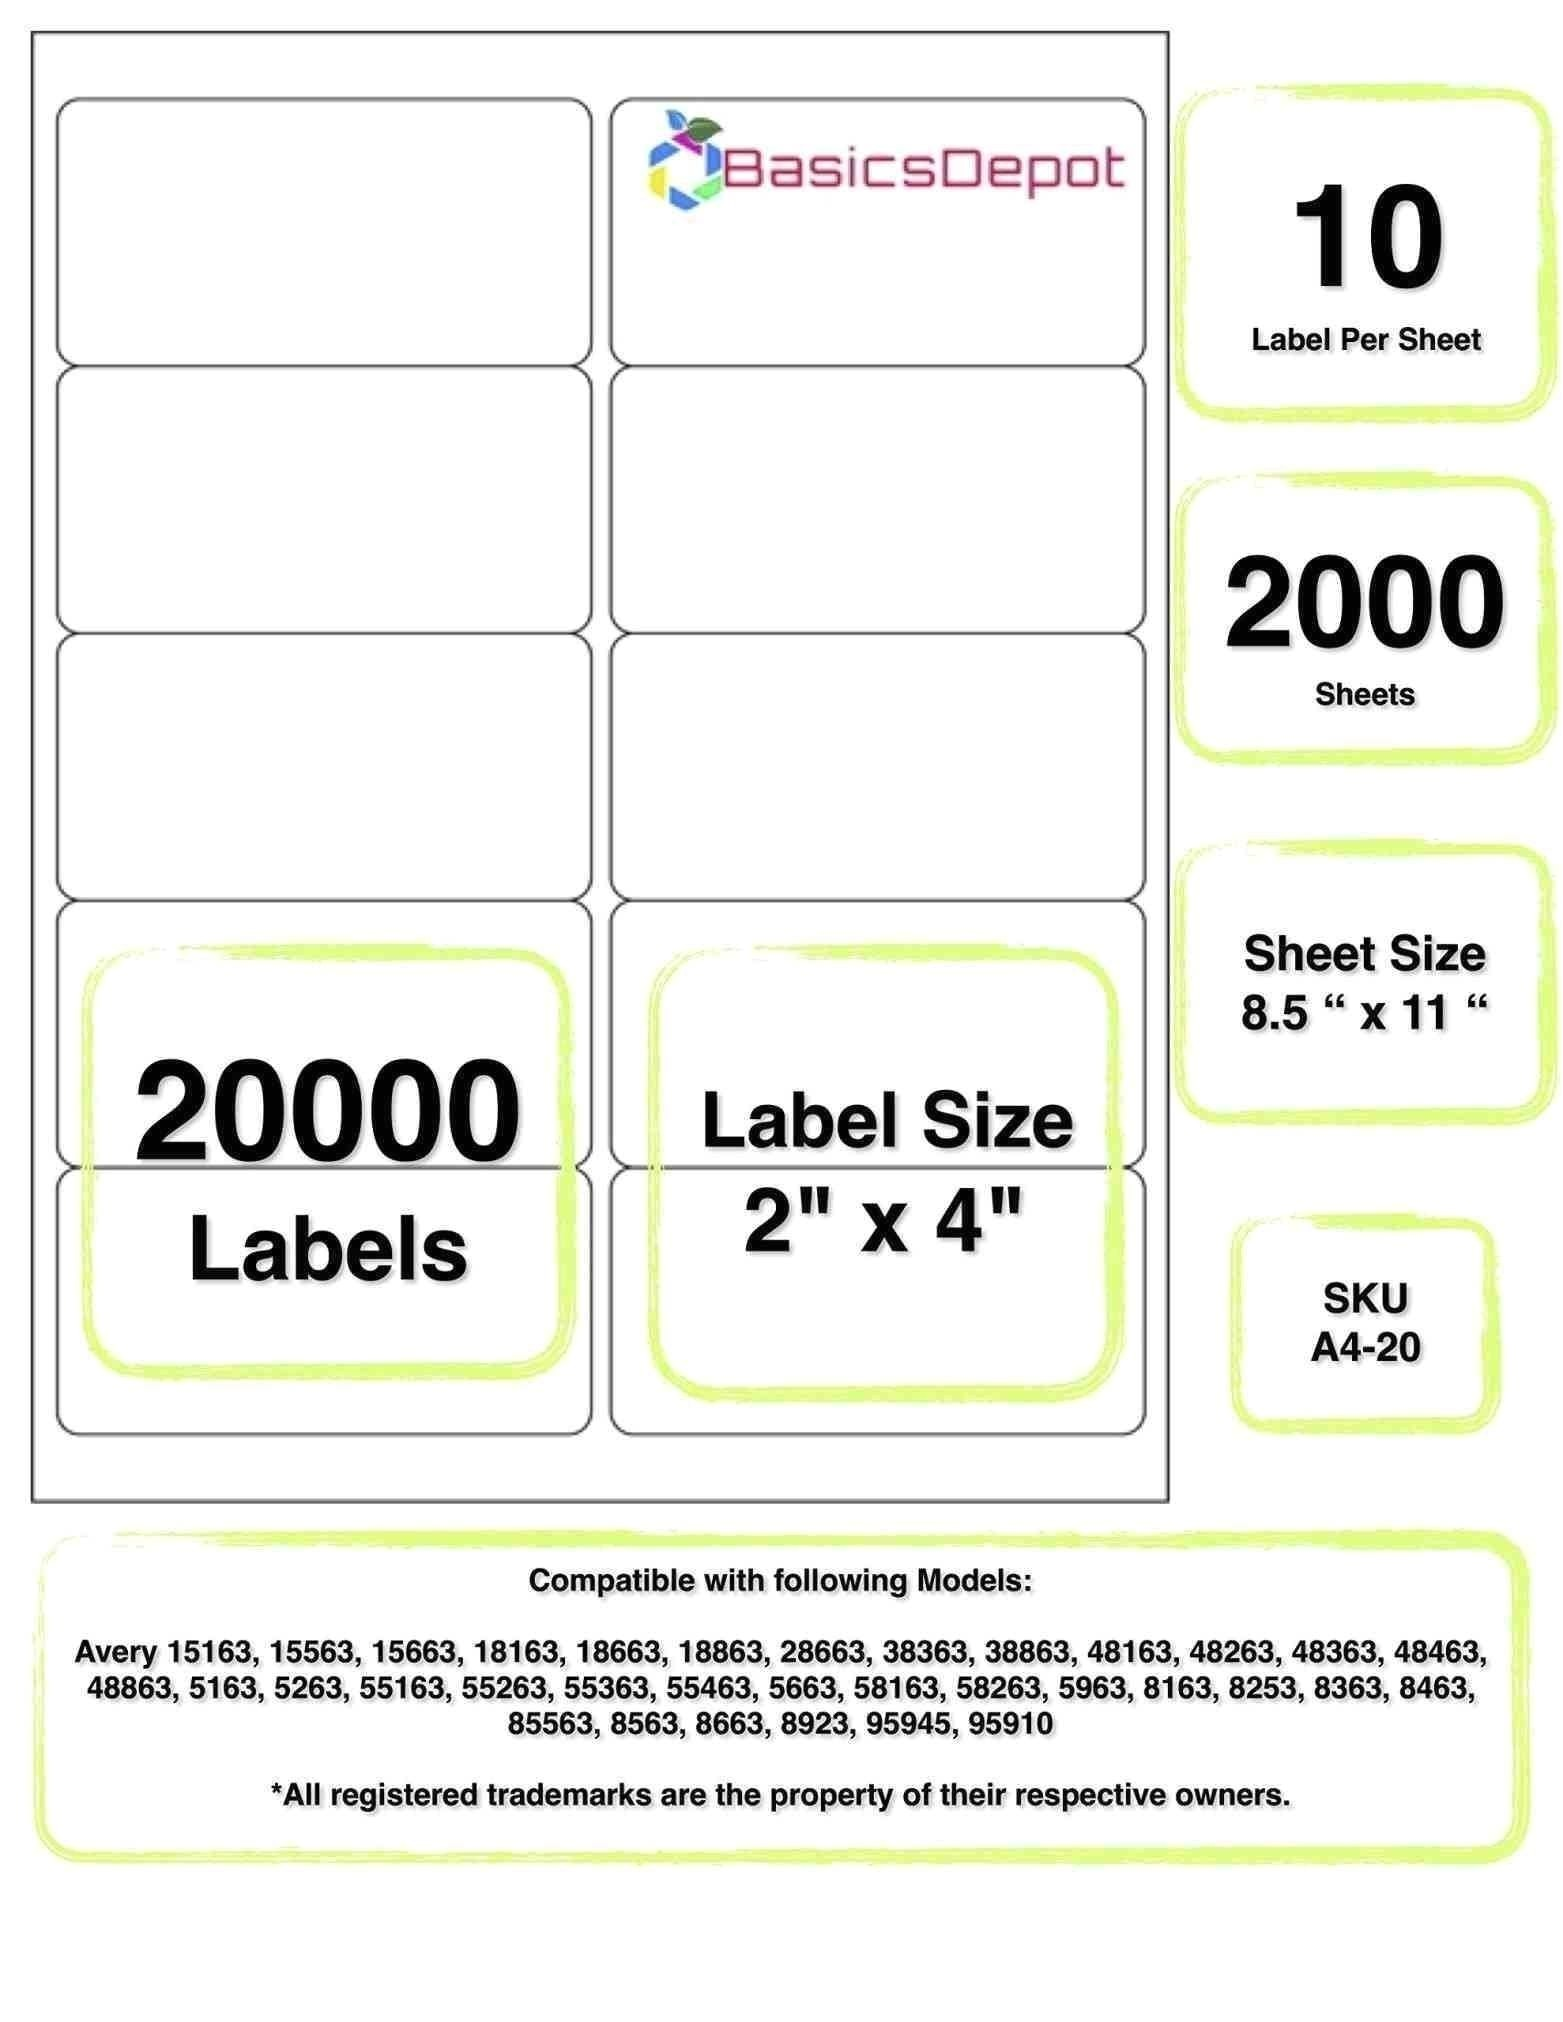 Avery Address Labels Template 18660 Free Avery 18660 Template Comoarmar org